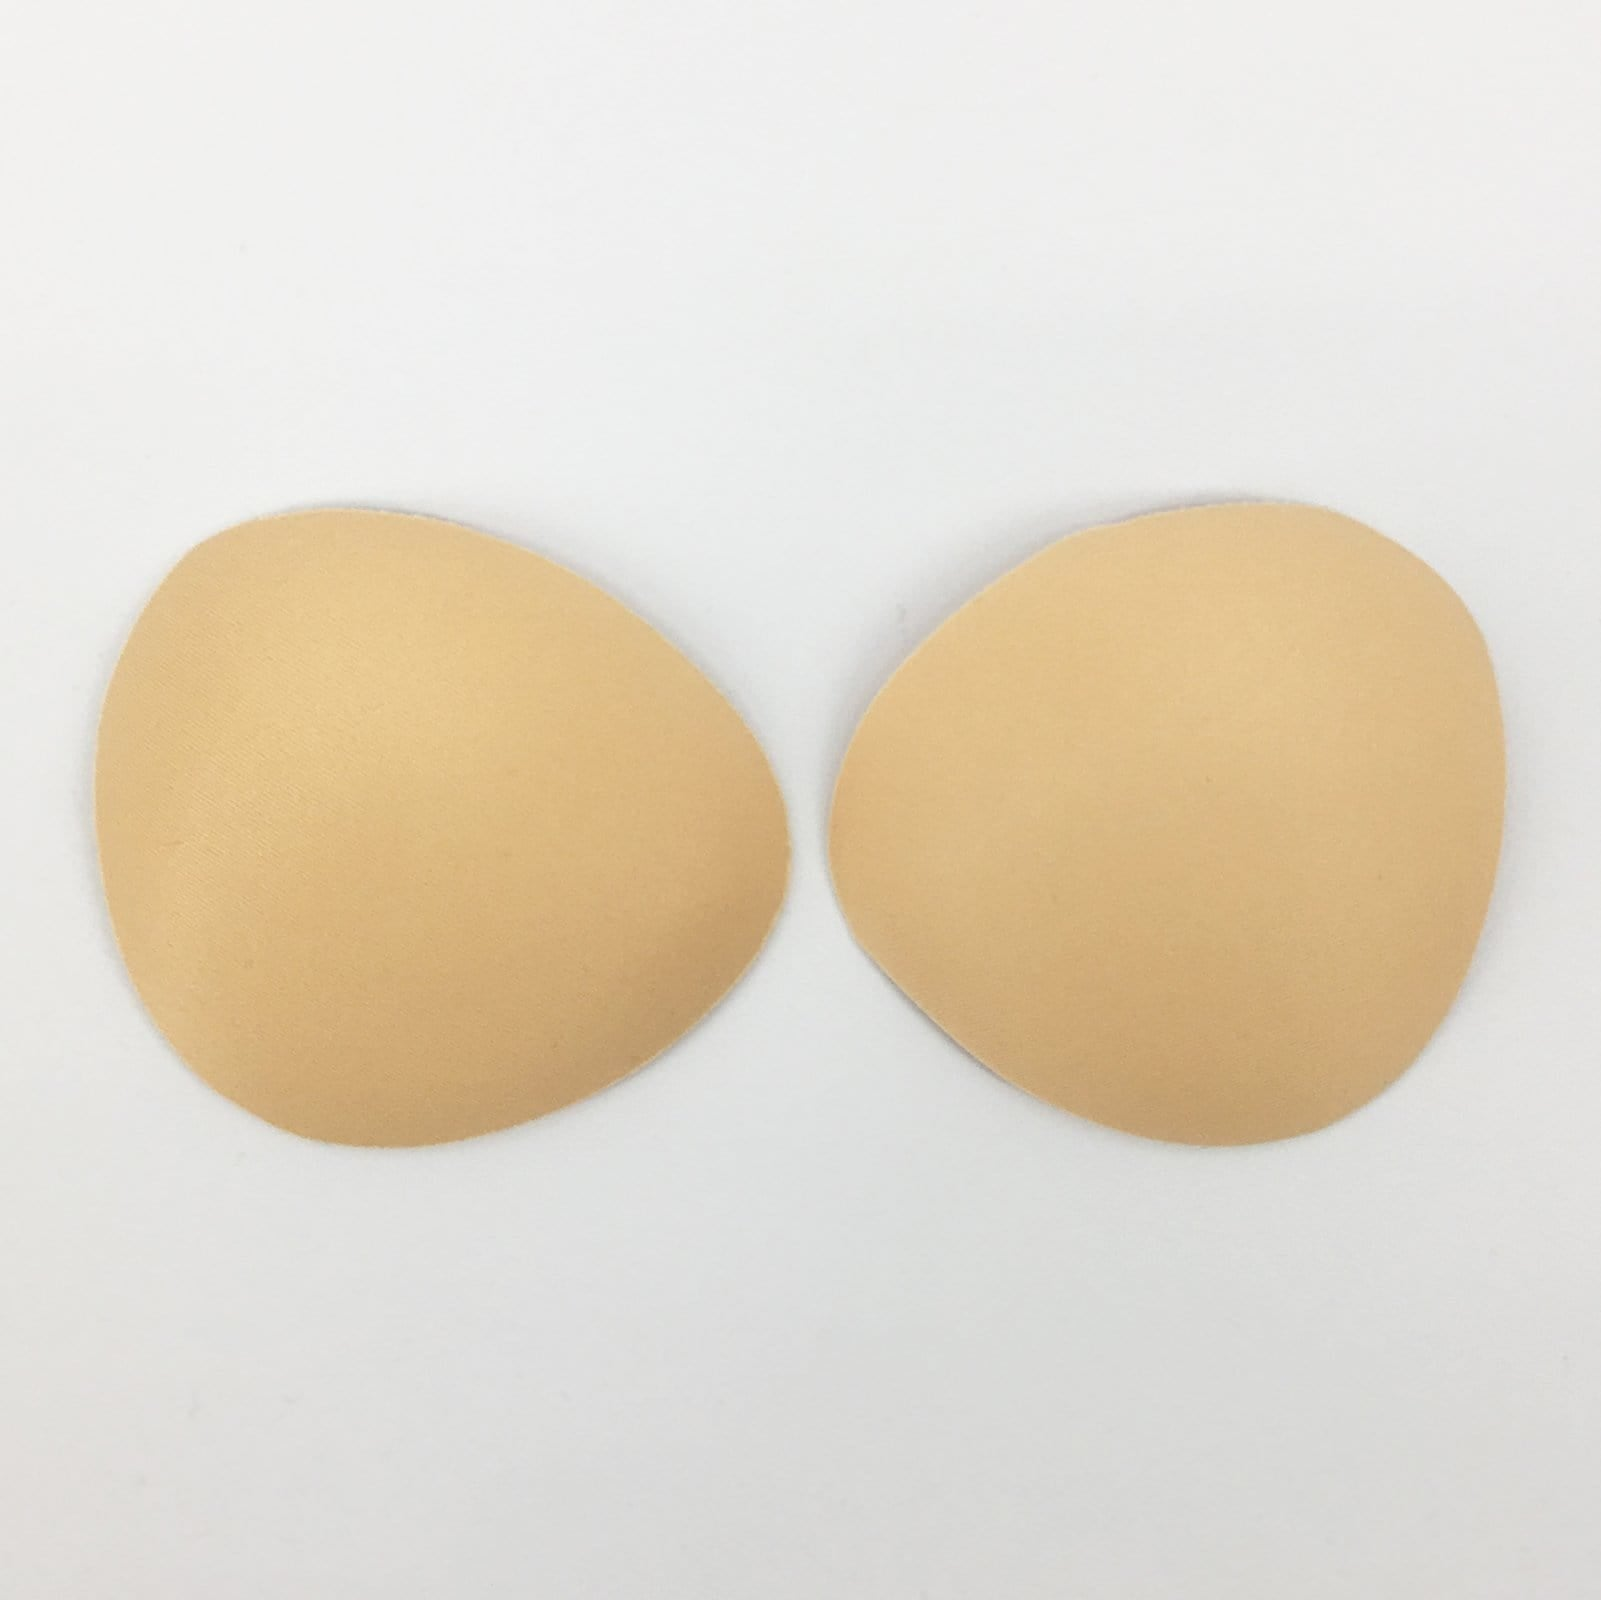 Small Push-Up Bra Padding Inserts In Nude - FUNFIT